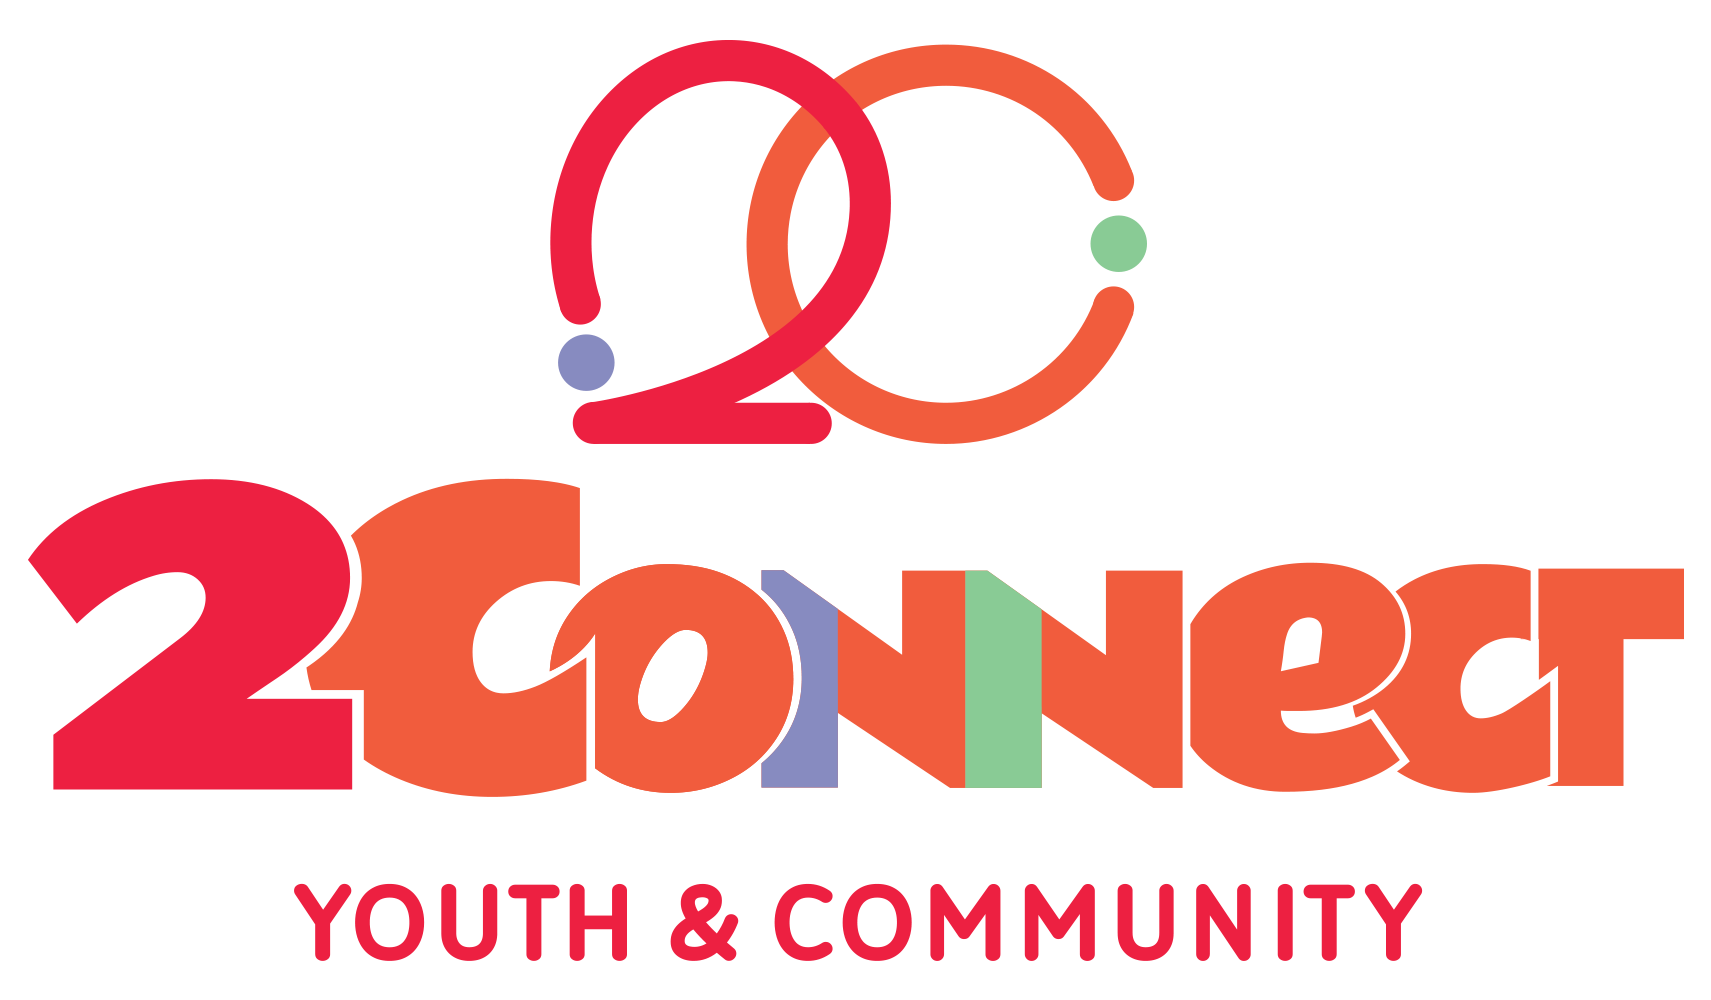 2Connect Youth & Community